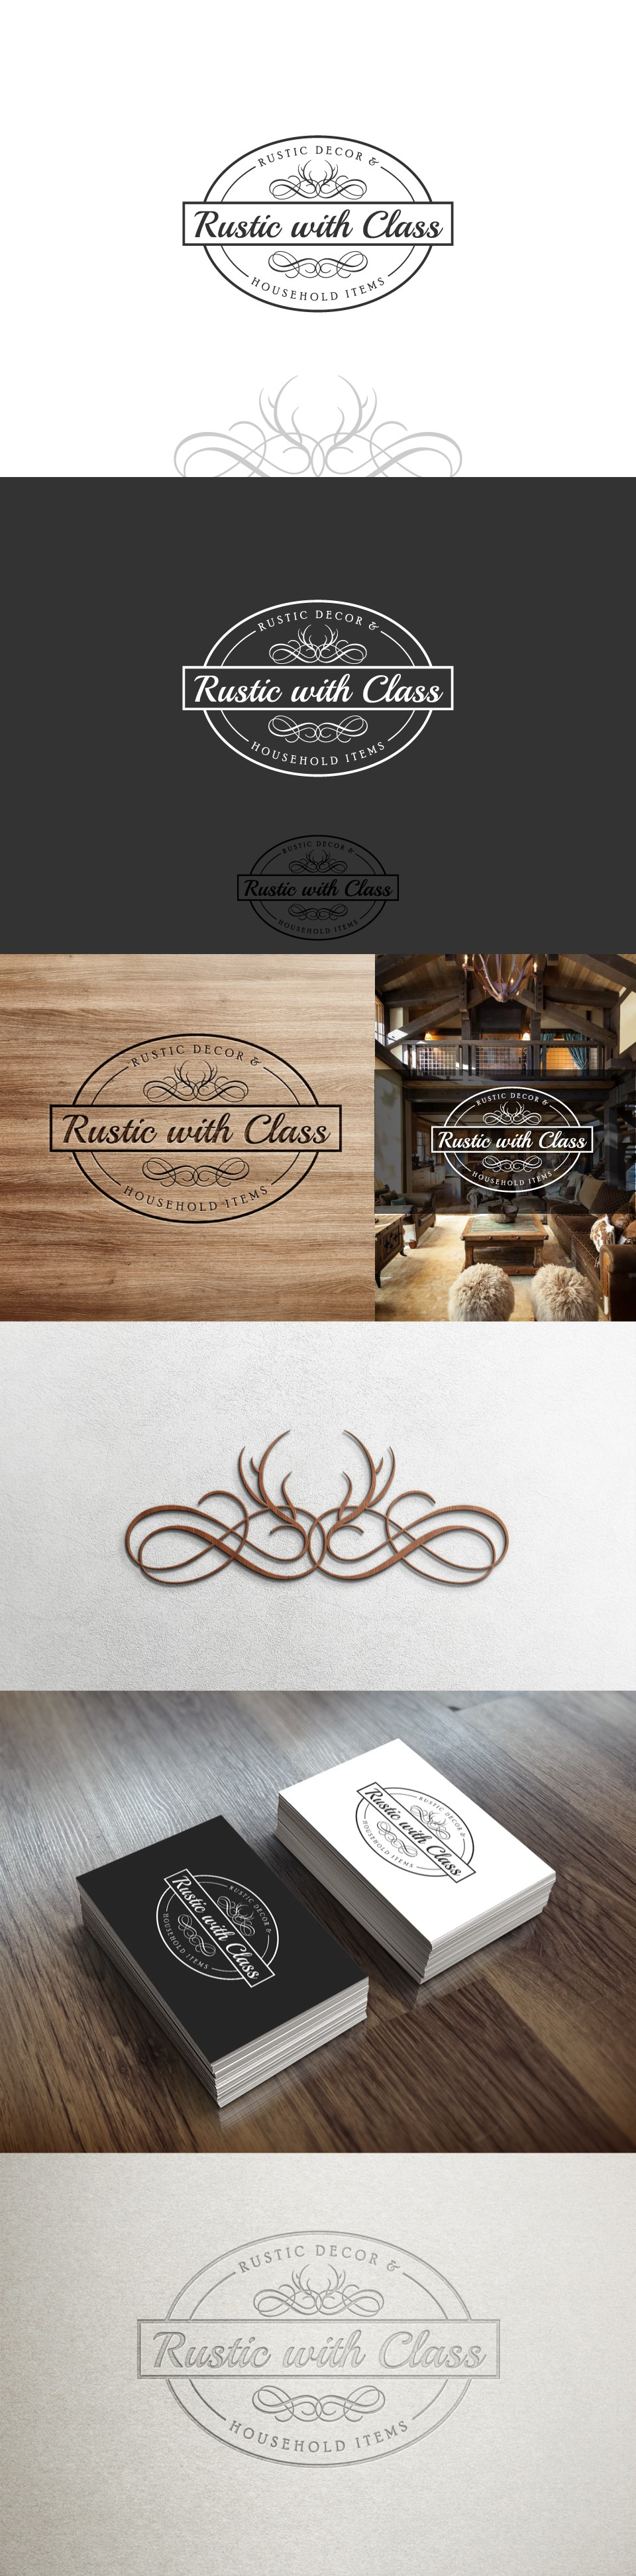 design a strong classy logo for Rustic with Class, future work possible